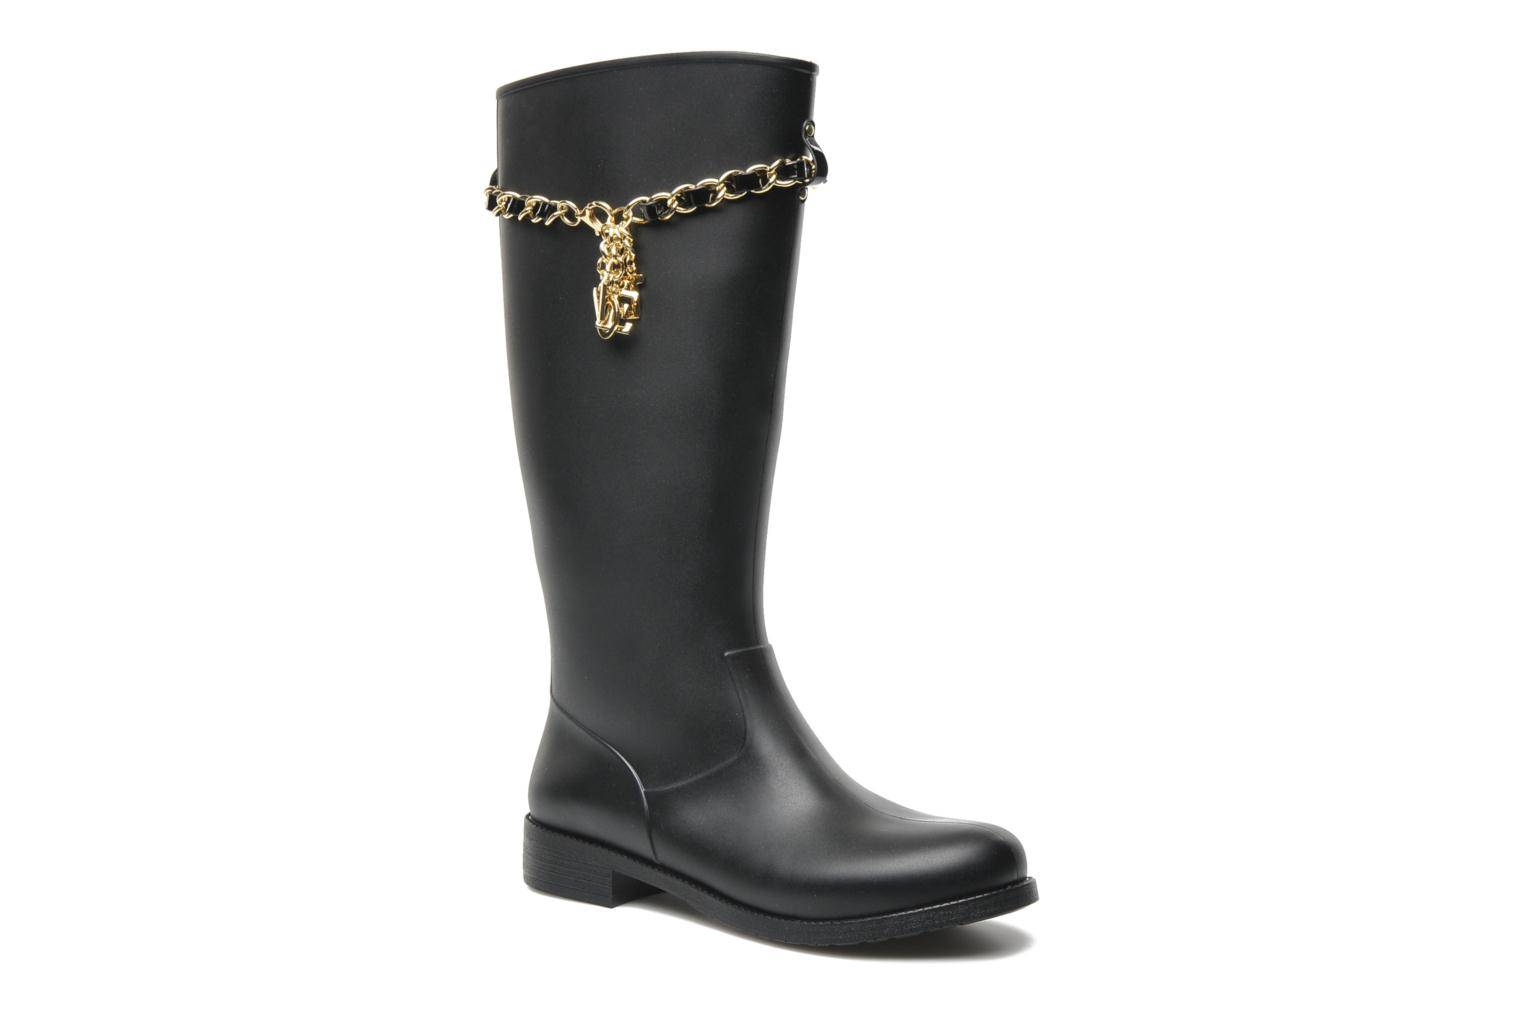 Love Moschino Rain Boot High Boots Amp Wellies In Black At